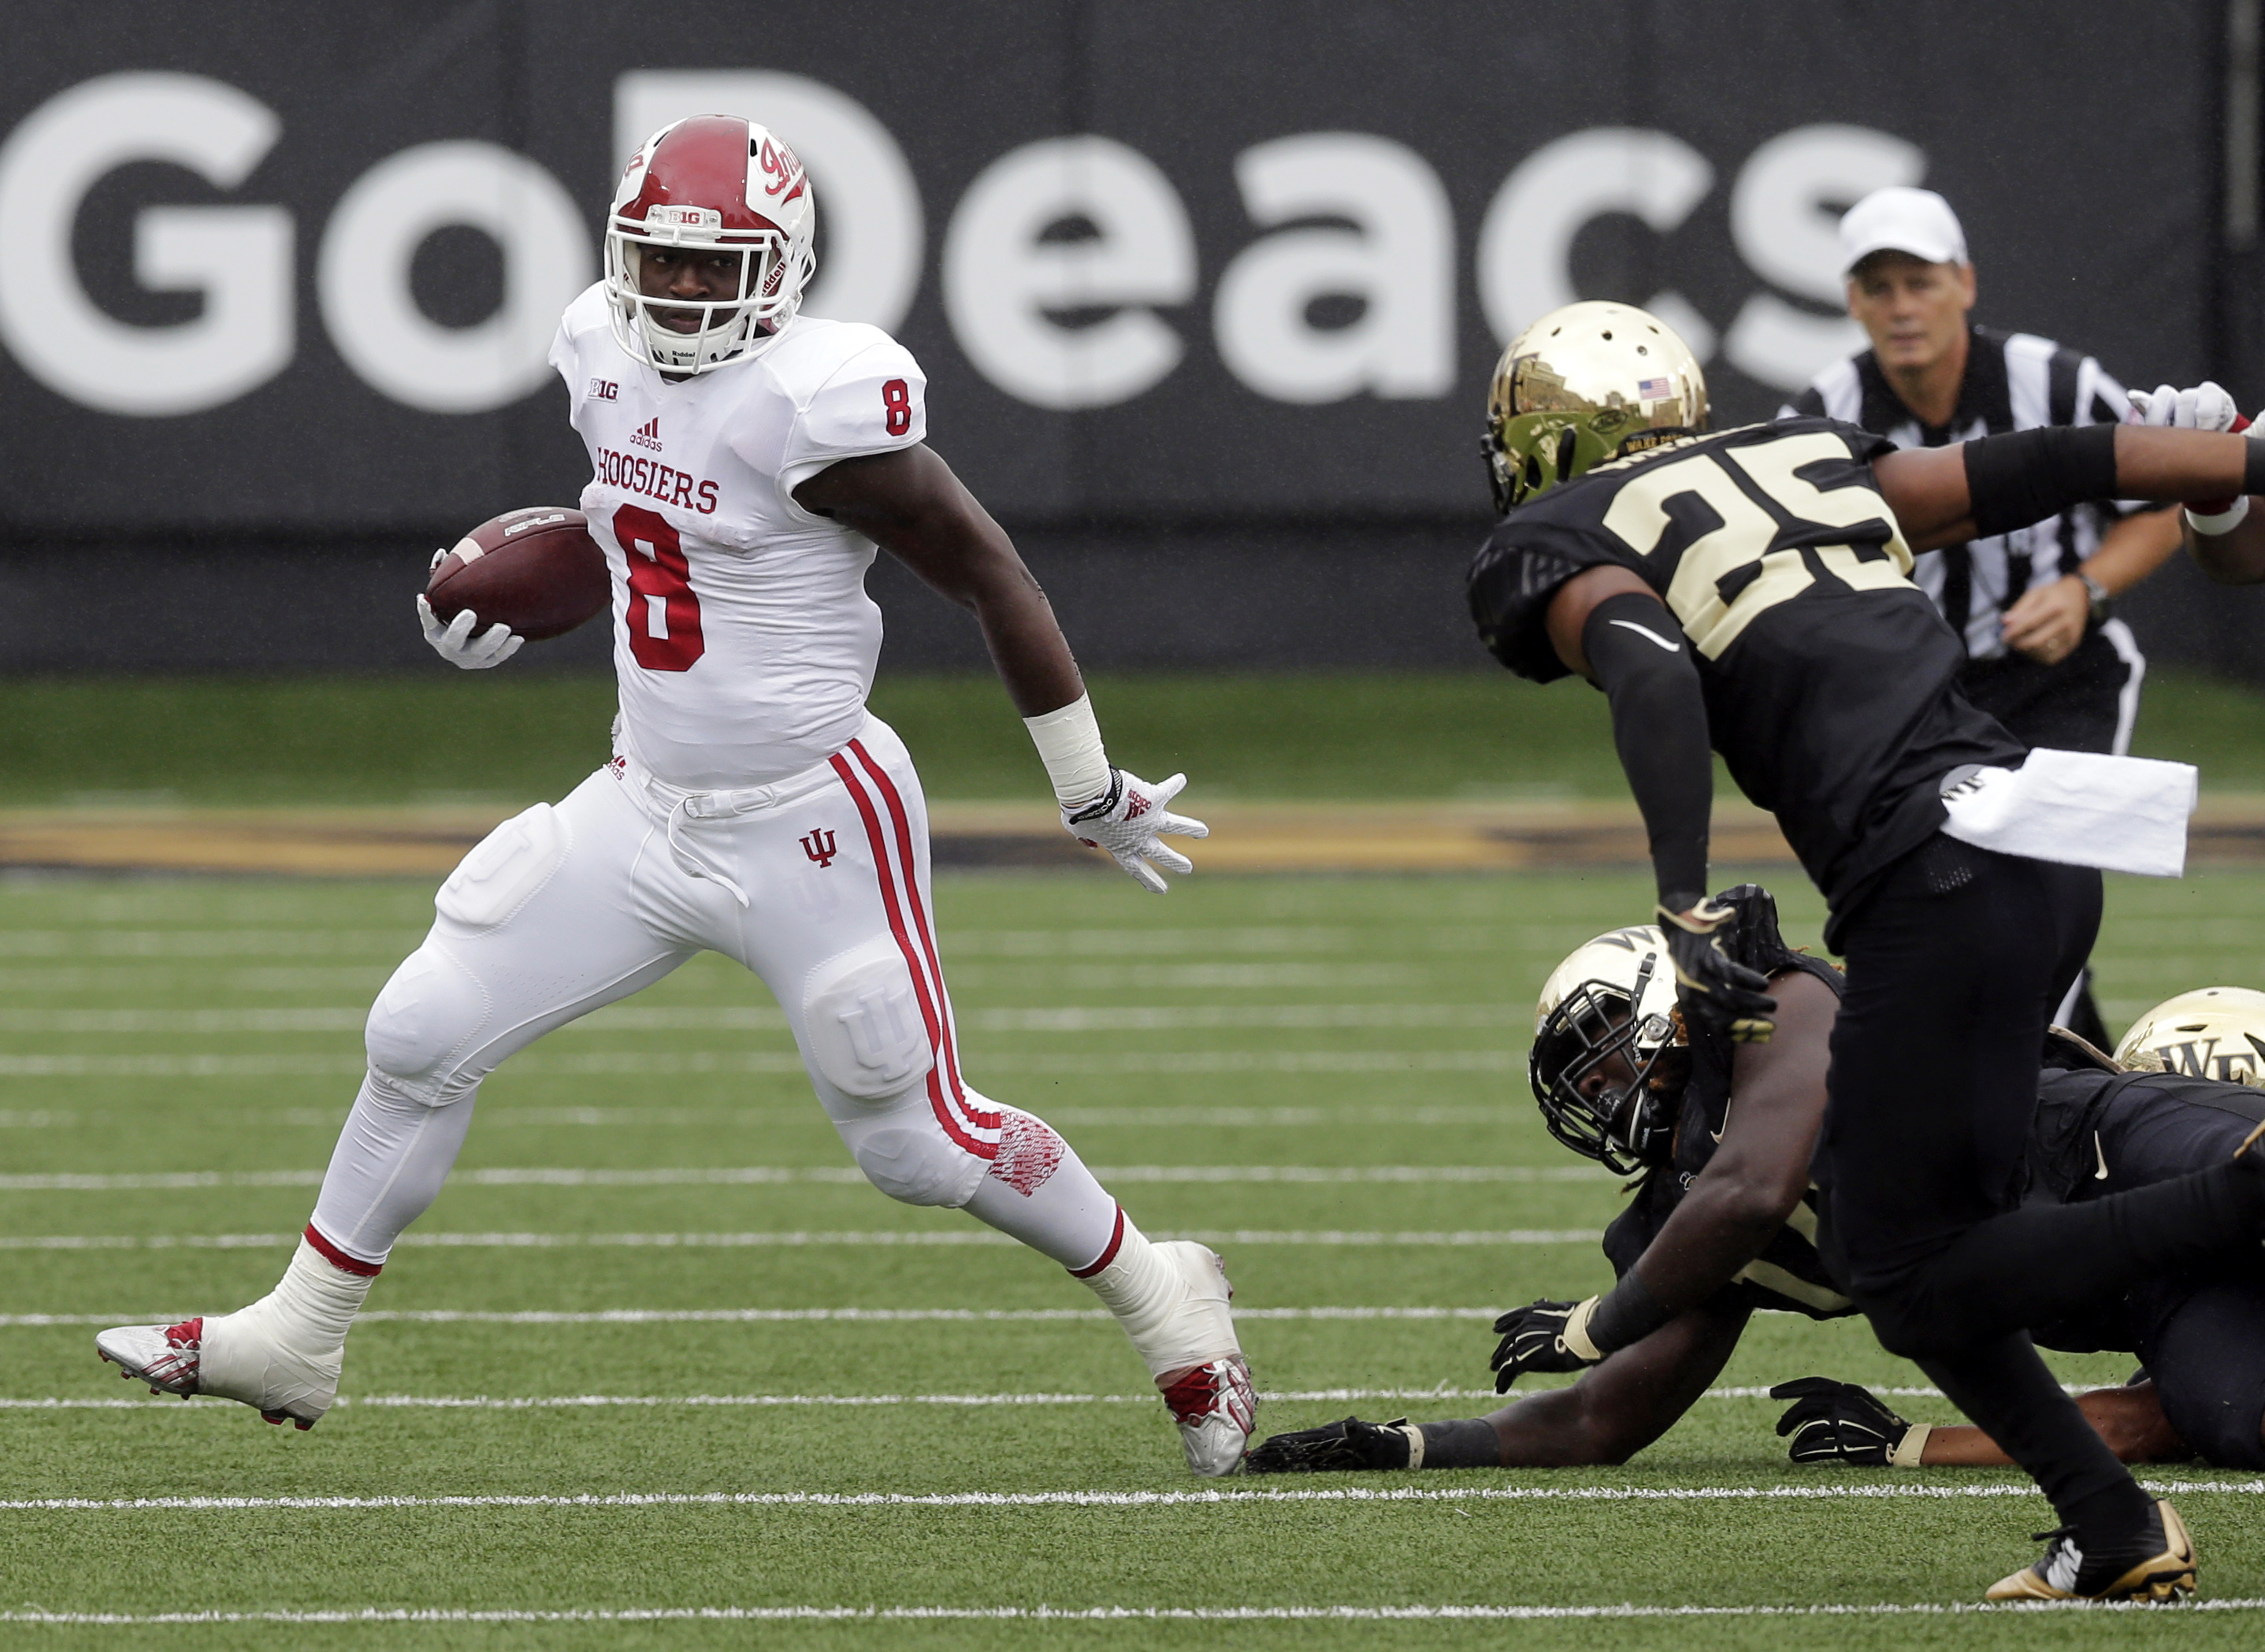 FILE - In this Sept. 26, 2015, file photo, Indiana's Jordan Howard (8) runs against Wake Forest during the first half of an NCAA college football game in Winston-Salem, N.C. This Saturday, Oct. 3, sets up as the biggest of the season so far in college foo